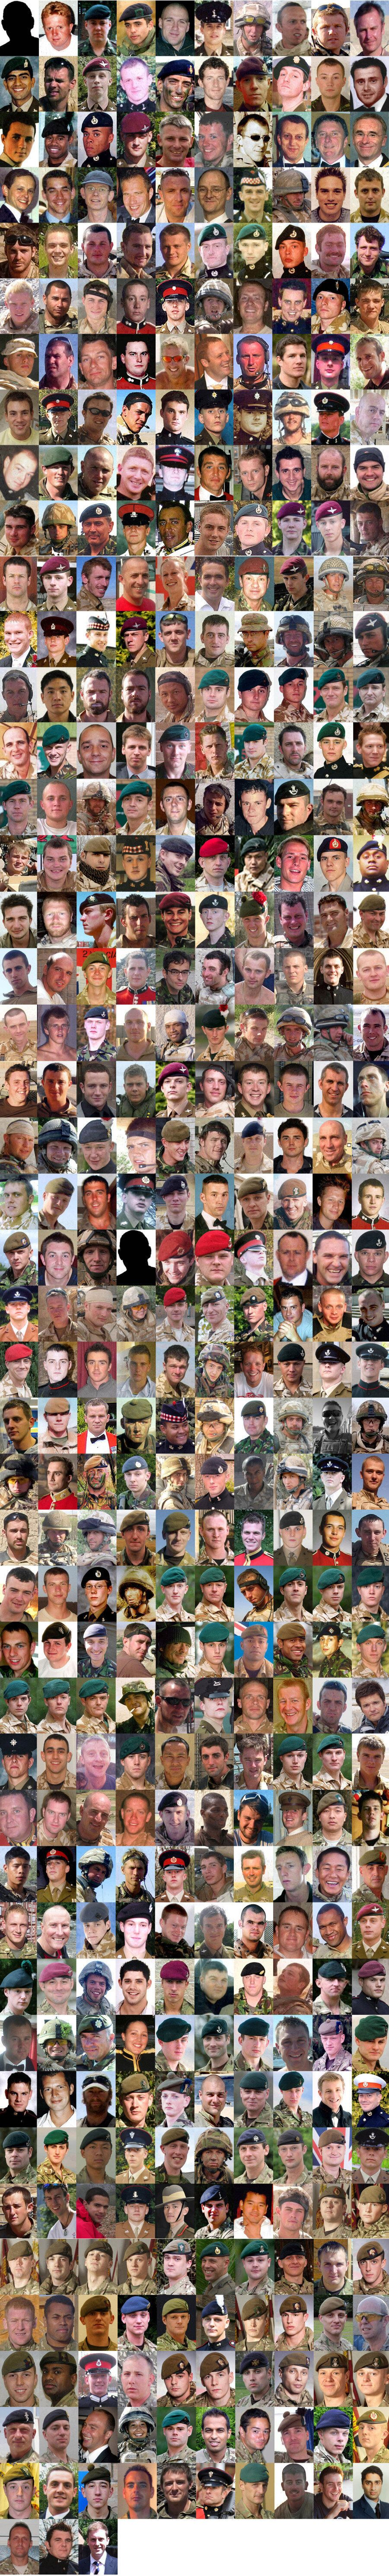 The Faces Of The 453 Britons Killed In Afghanistan In One